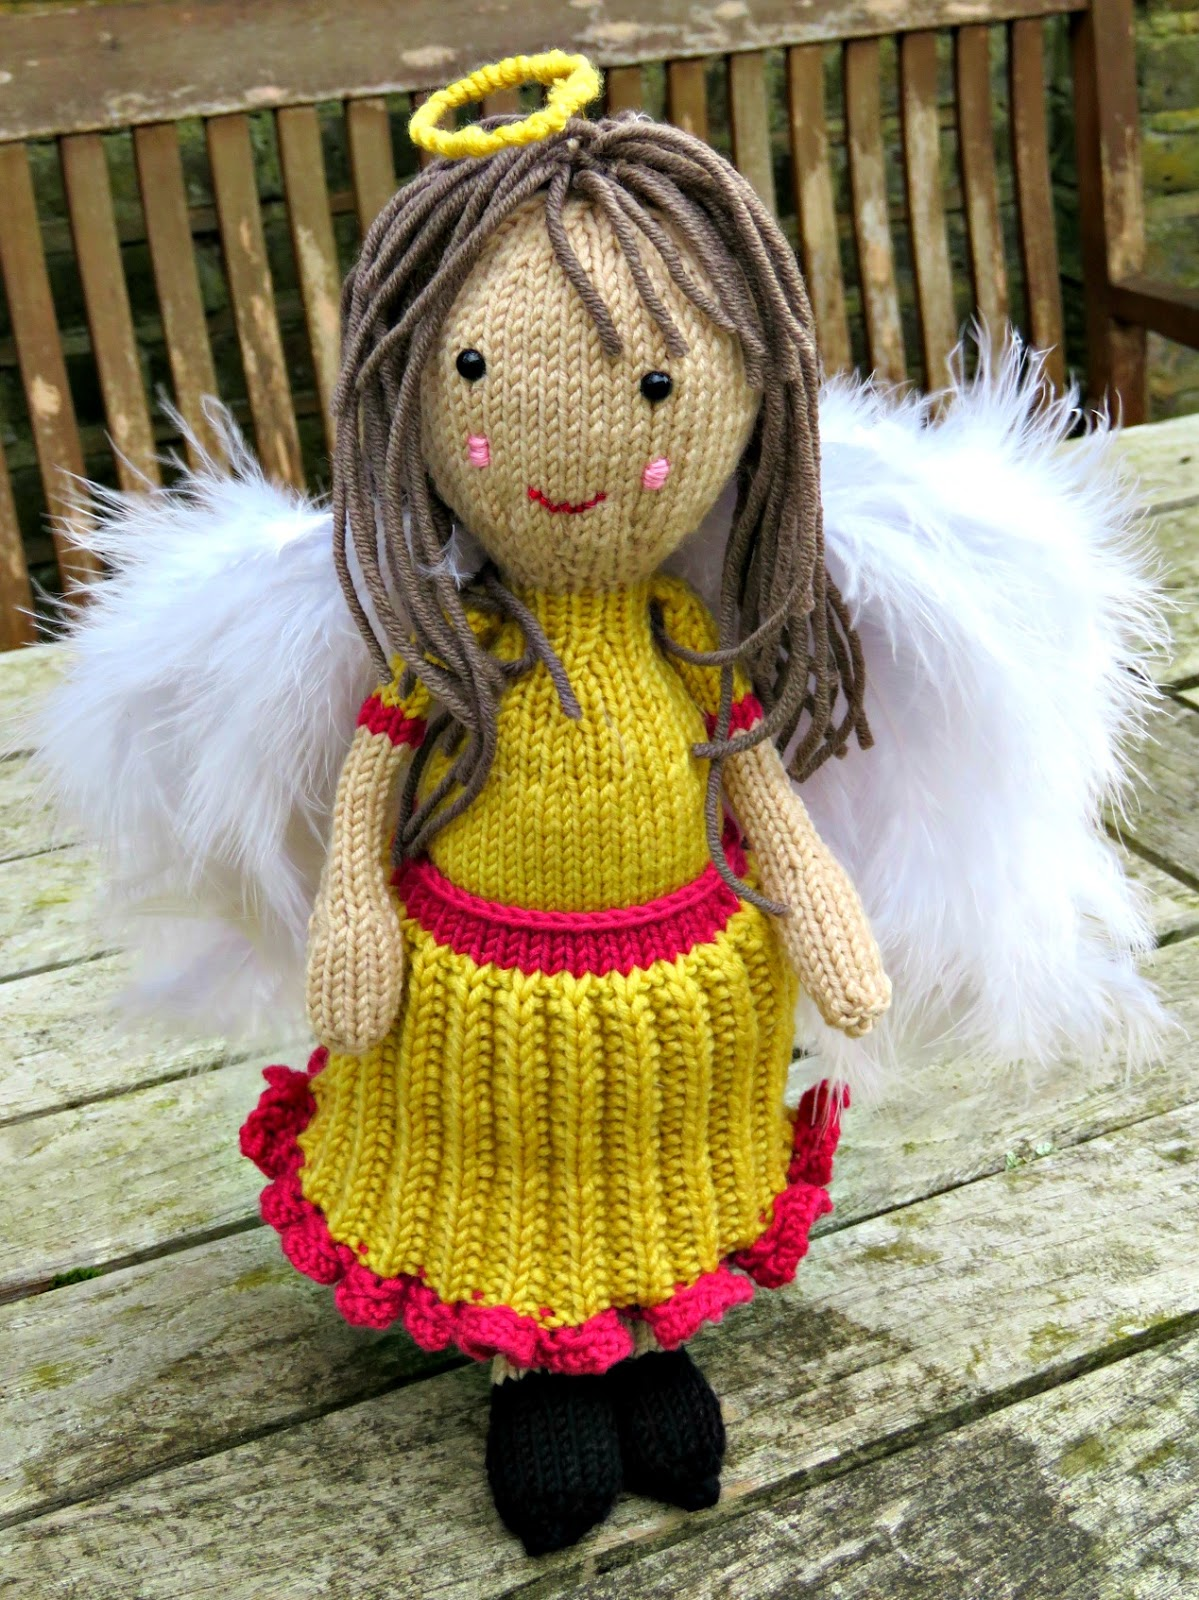 Knitting Pattern For Christmas Tree Angel : just saying ...: Handknit Christmas Tree Angel ...